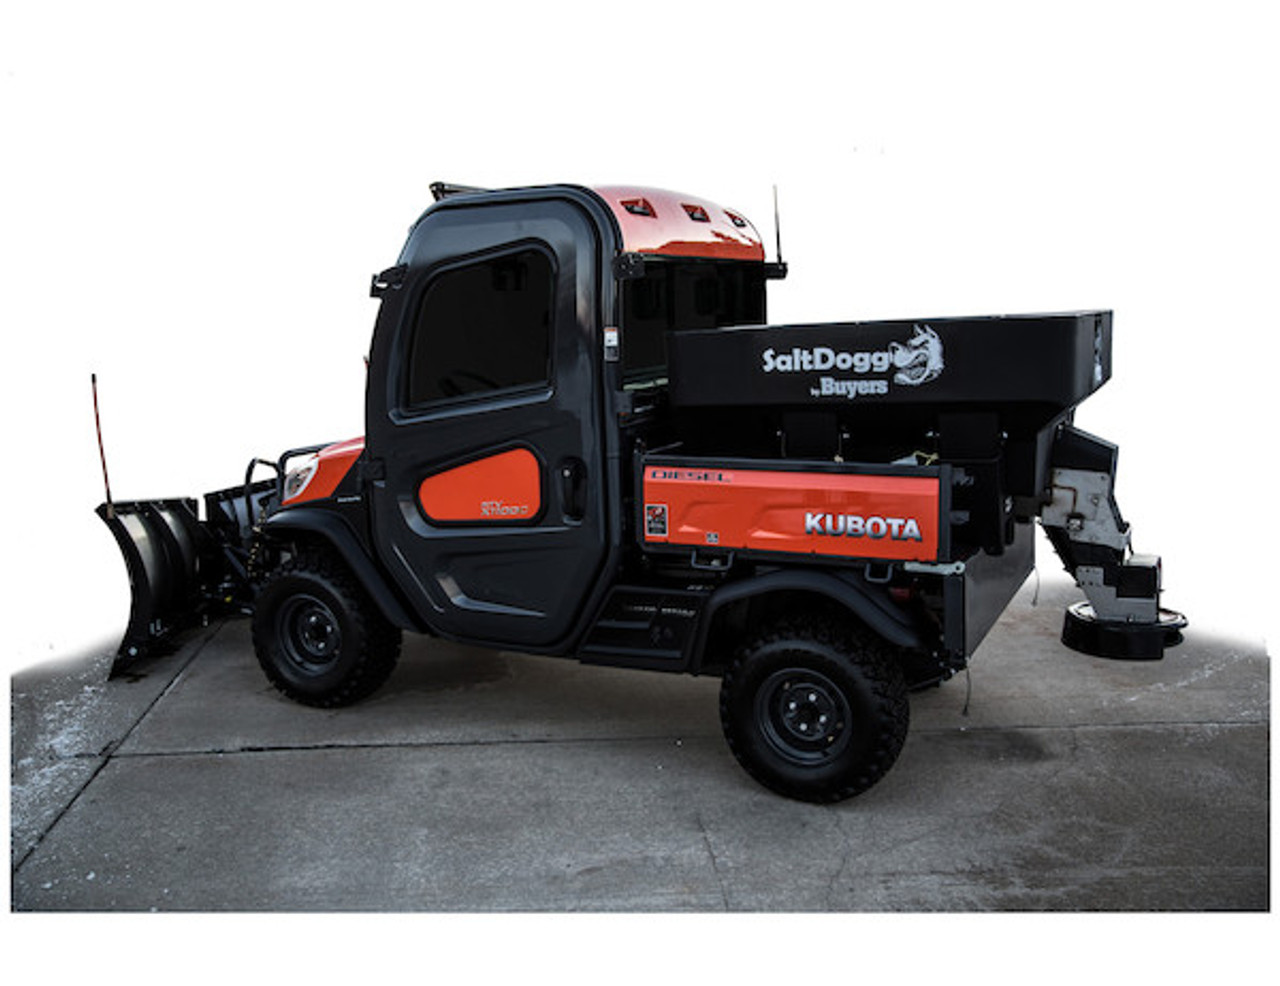 SHPE0750X BUYERS SaltDogg 0.75 Cubic Yard Electric Black Poly Hopper Spreader - Extended Chute 3